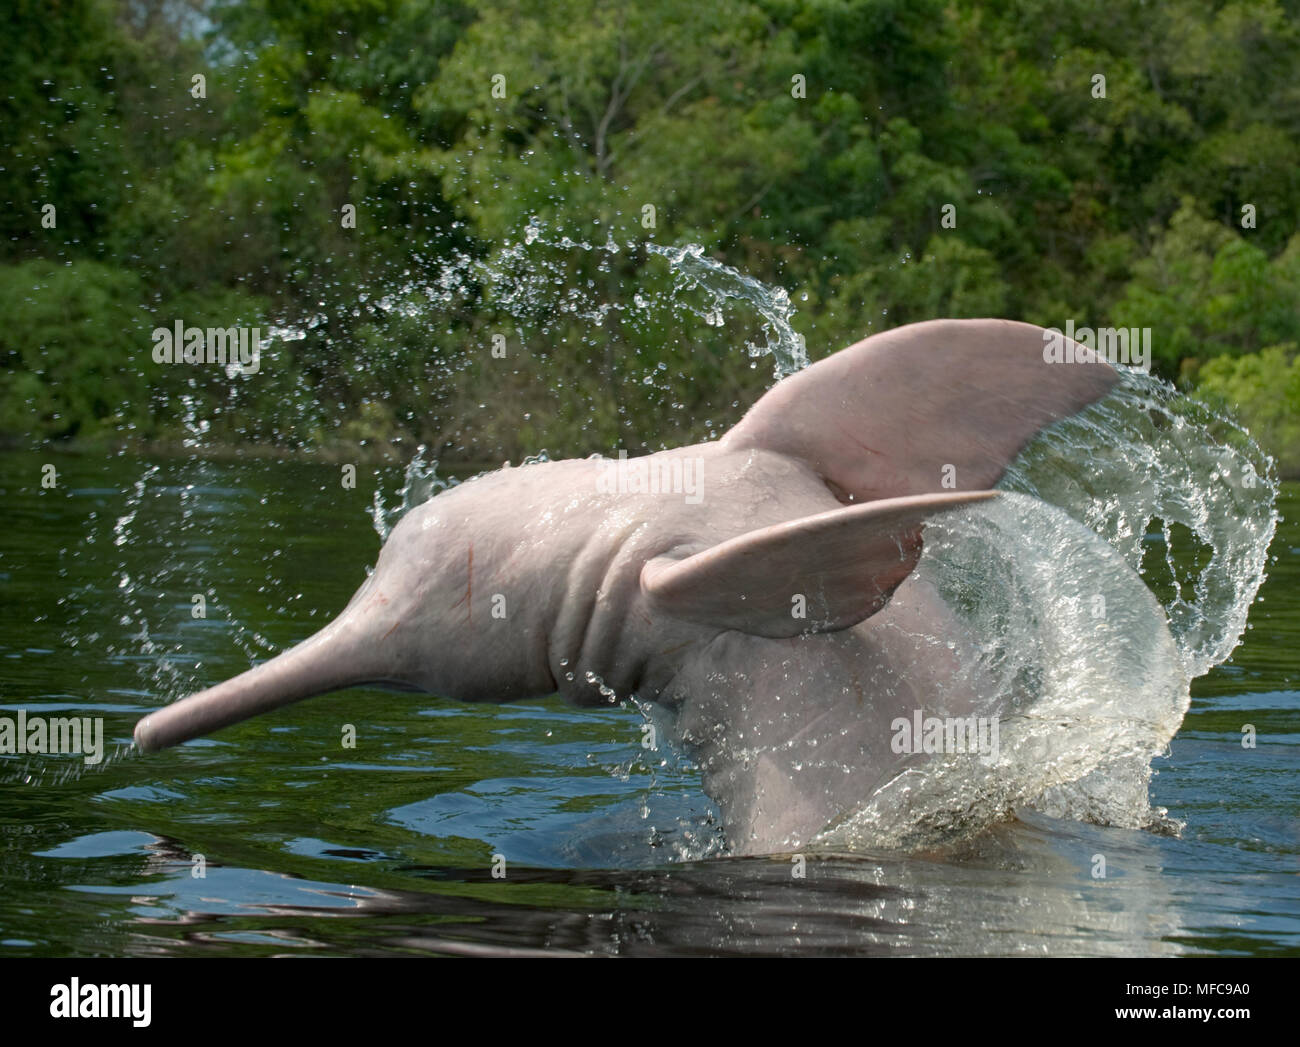 Amazon River Dolphins (Inia geoffrensis) Ariau River, tributary of Rio Negro. Amazonia, Brazil - Stock Image